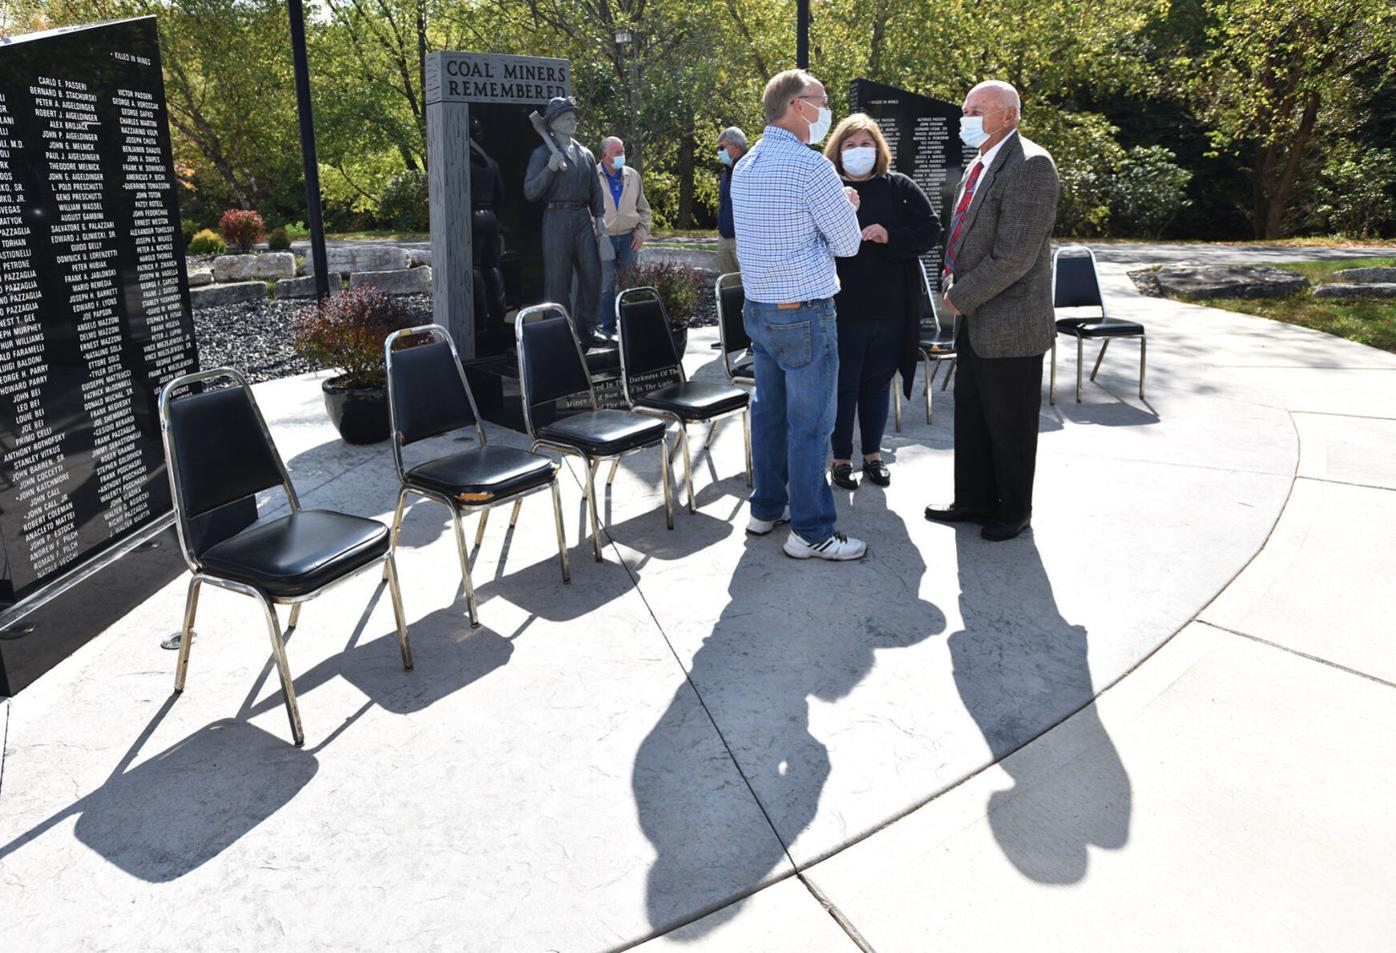 Coal miners monument rededicated